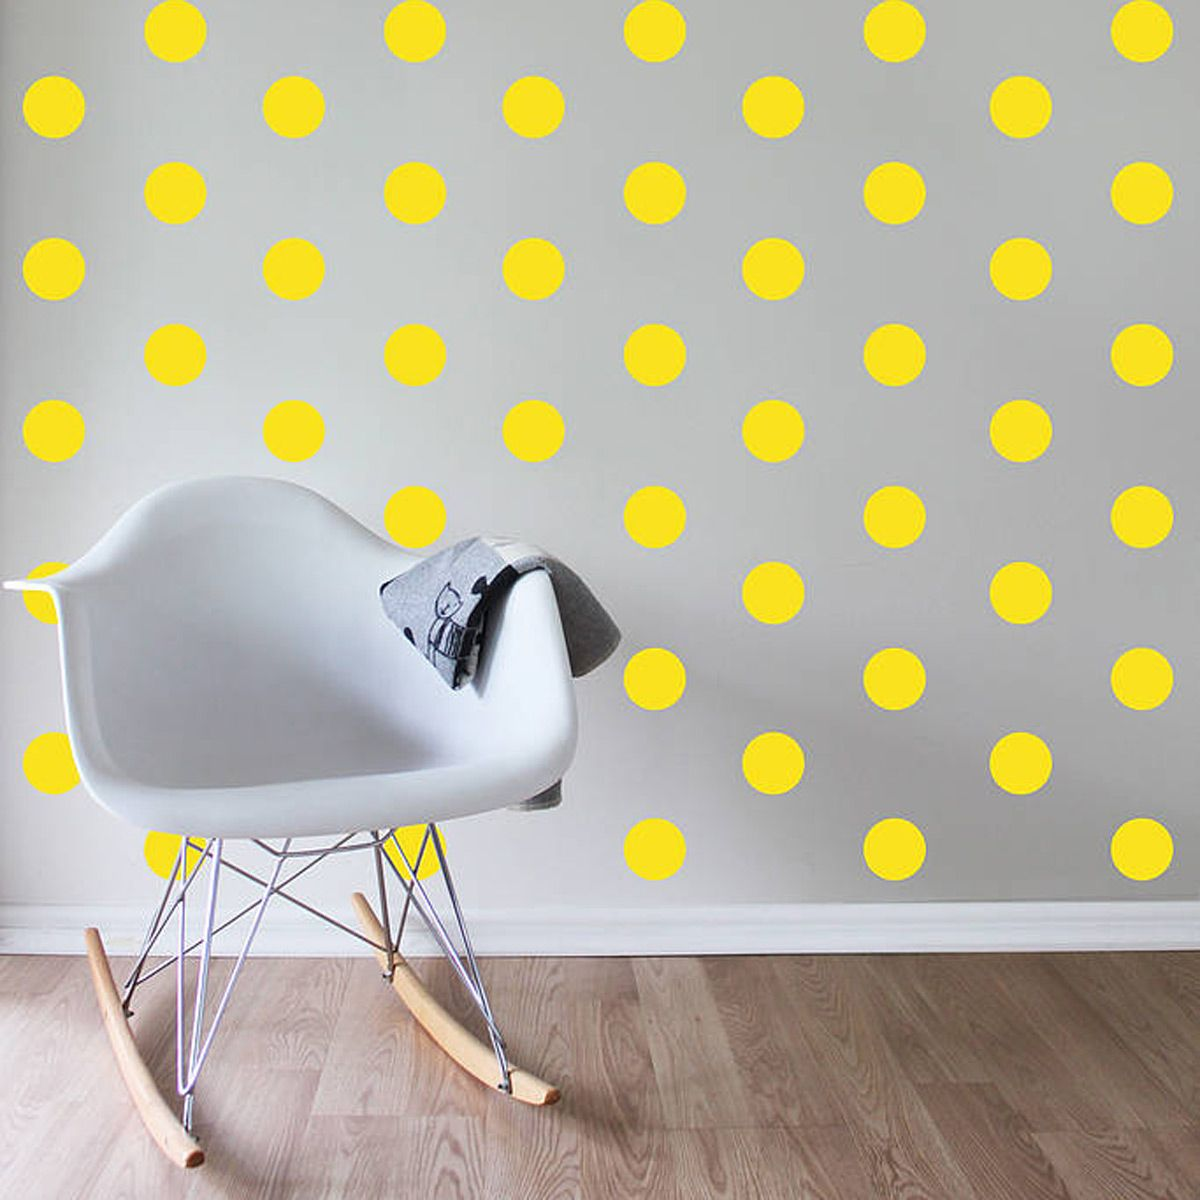 6 Of The Best Polka Dot Home Accessories